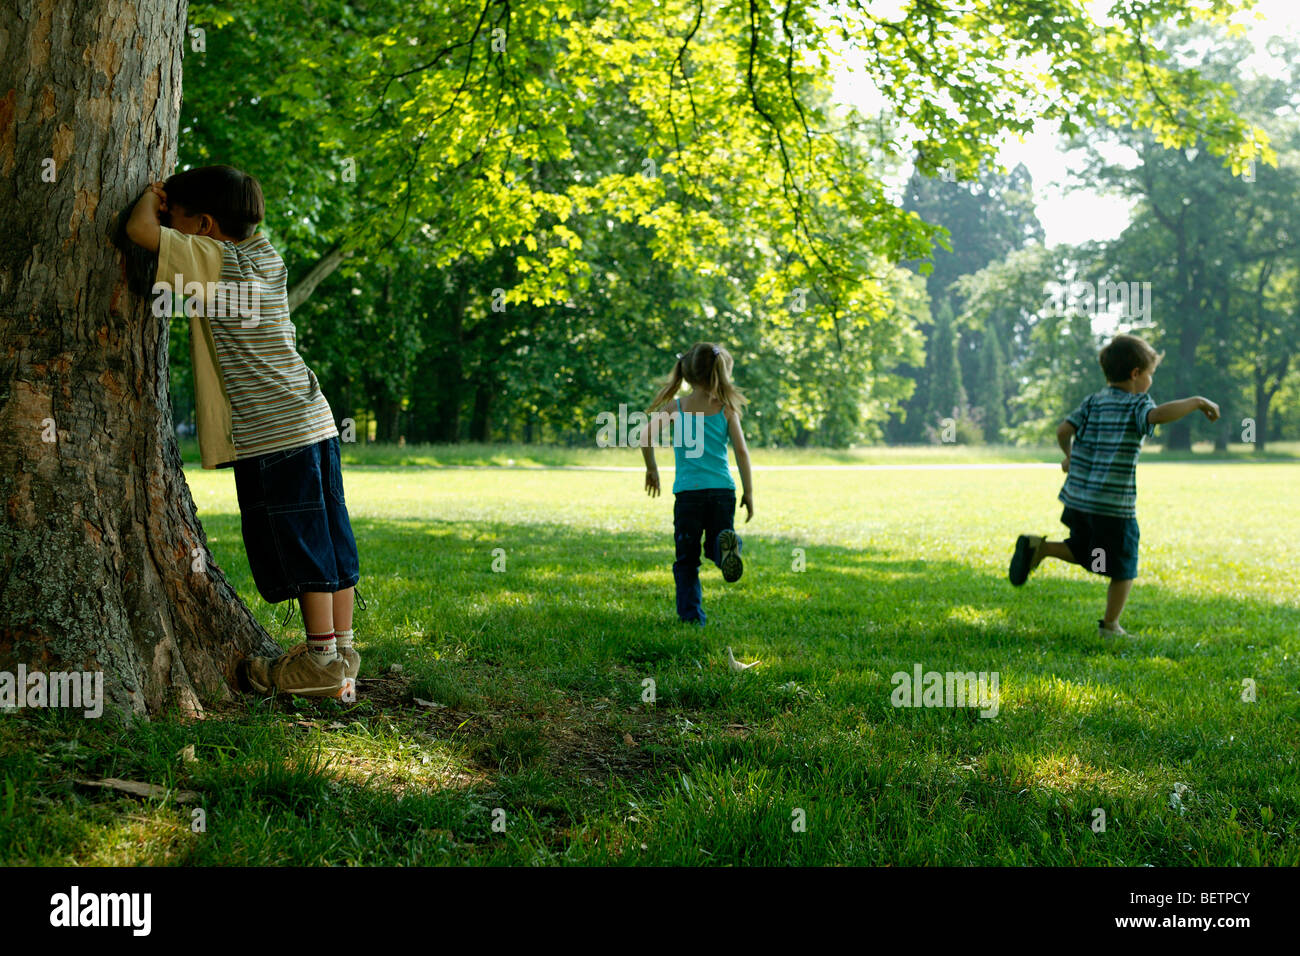 three children playing hide and seek in the park stock